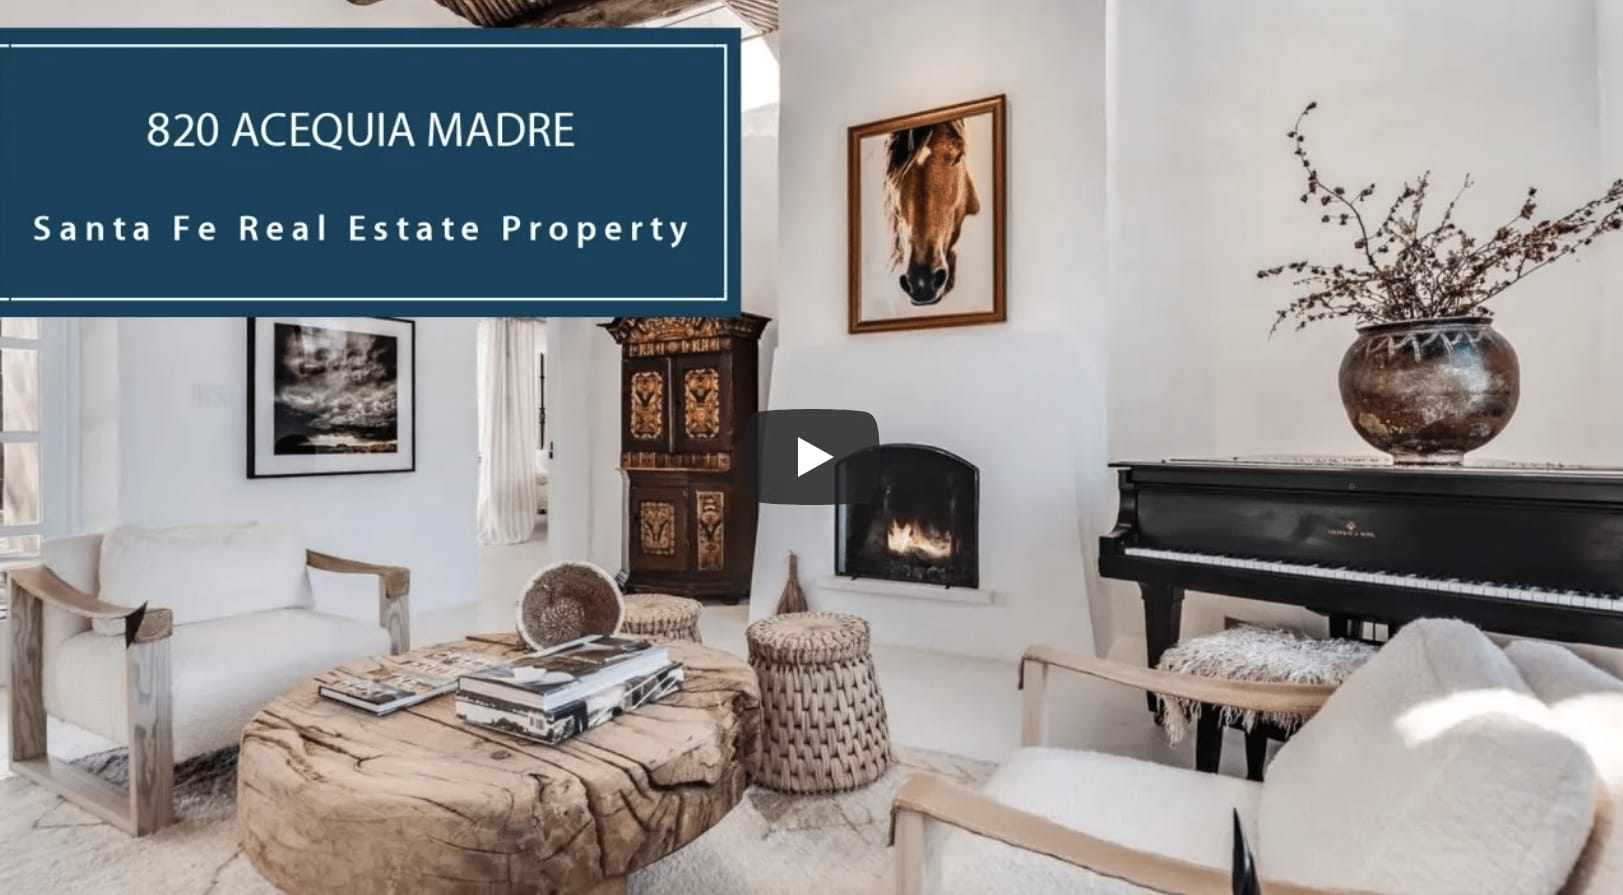 On the Acequia | 820 Acequia Madre video preview